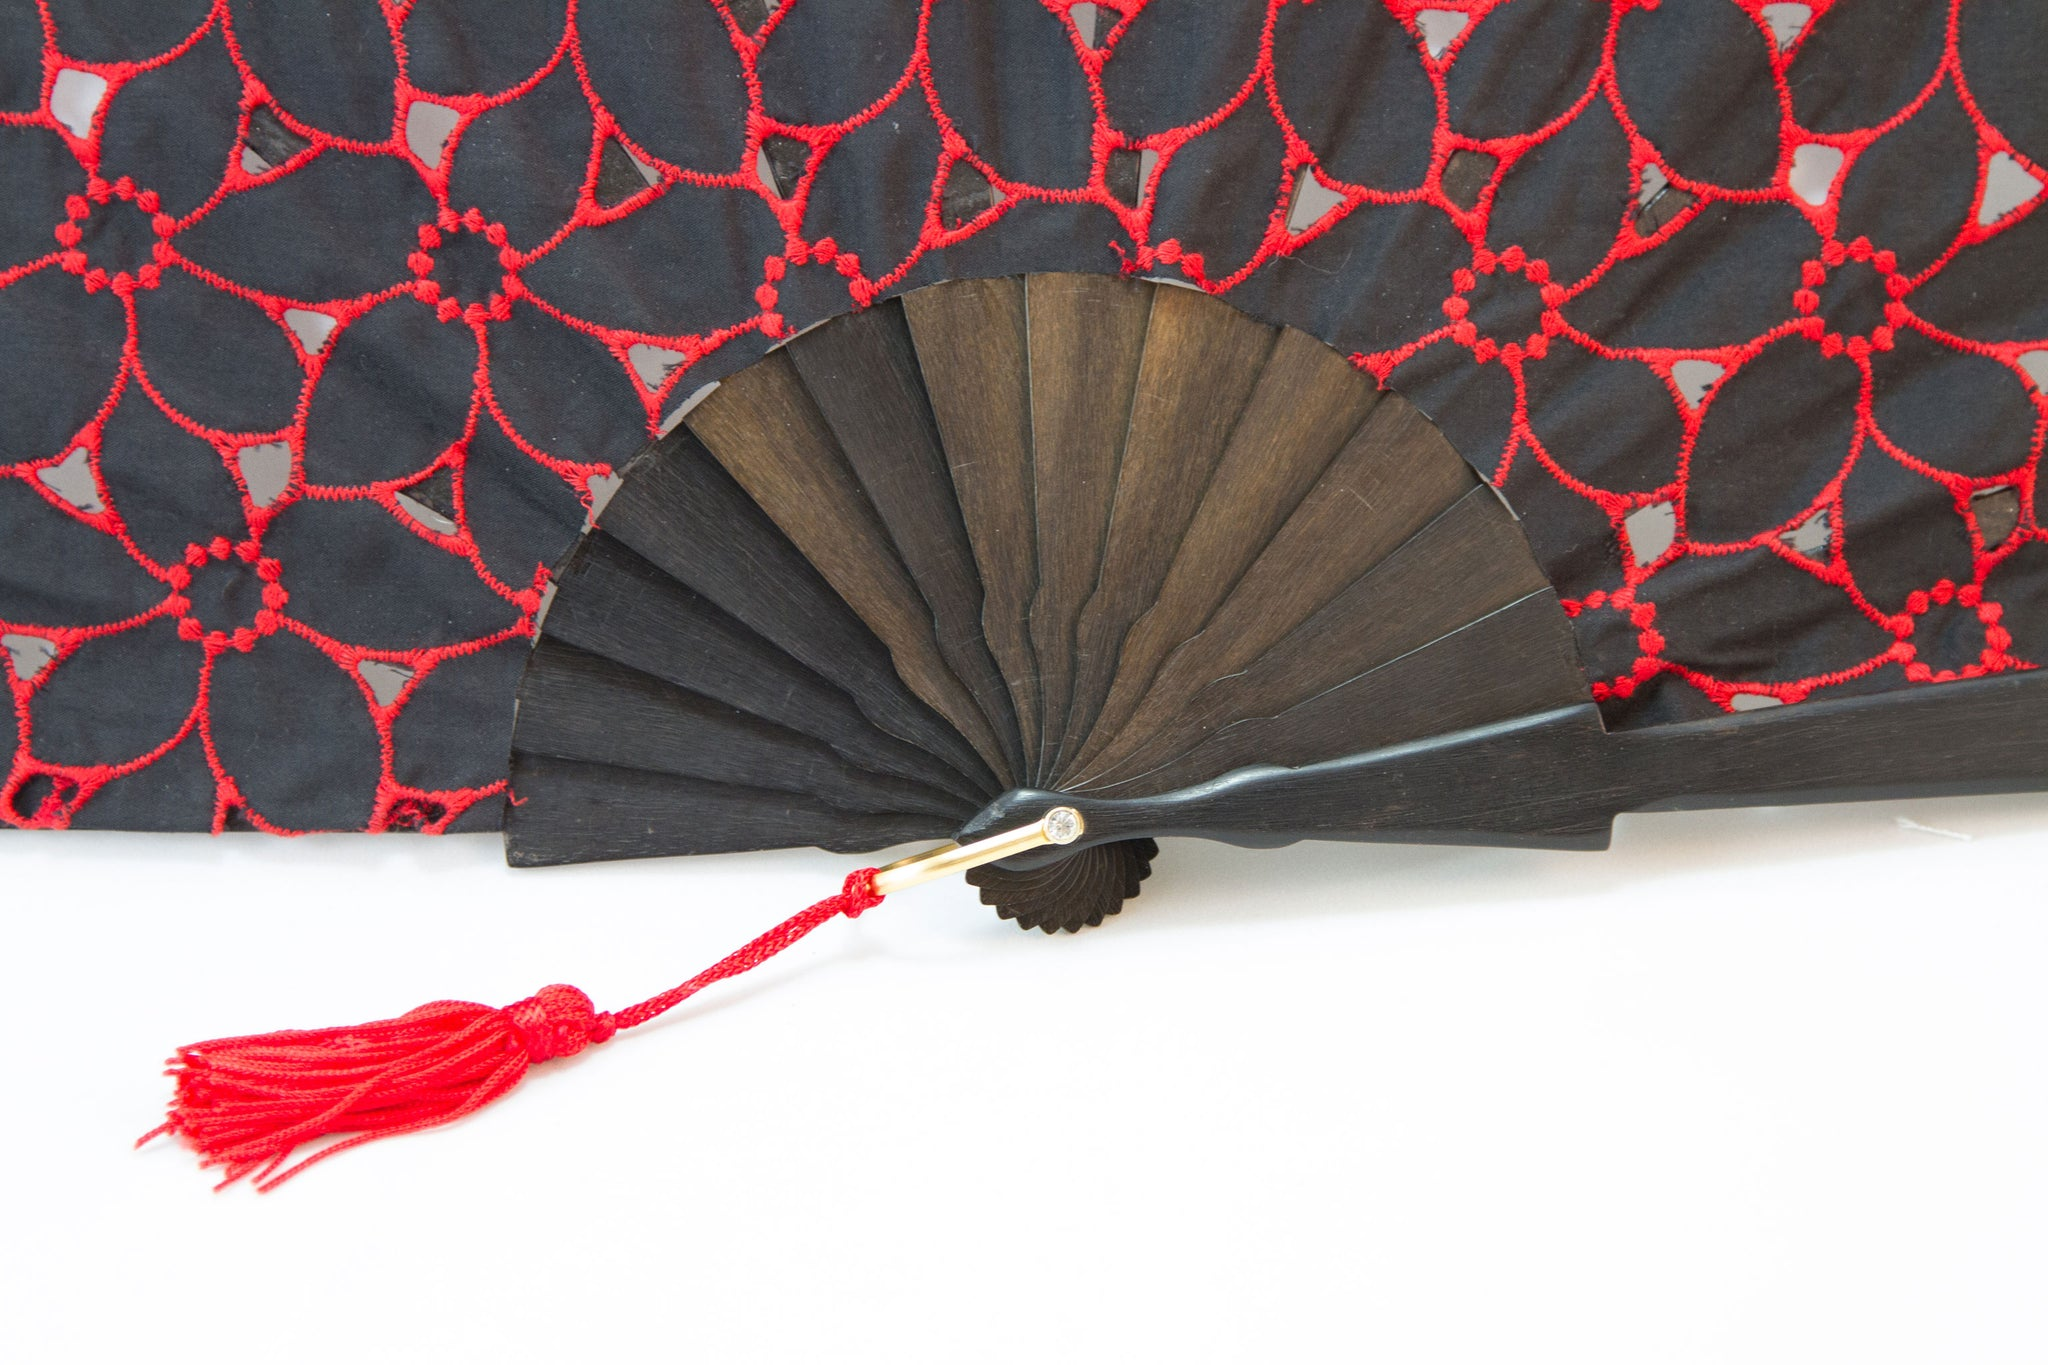 Limoges - Beautiful handmade red and black cotton open work fan detail